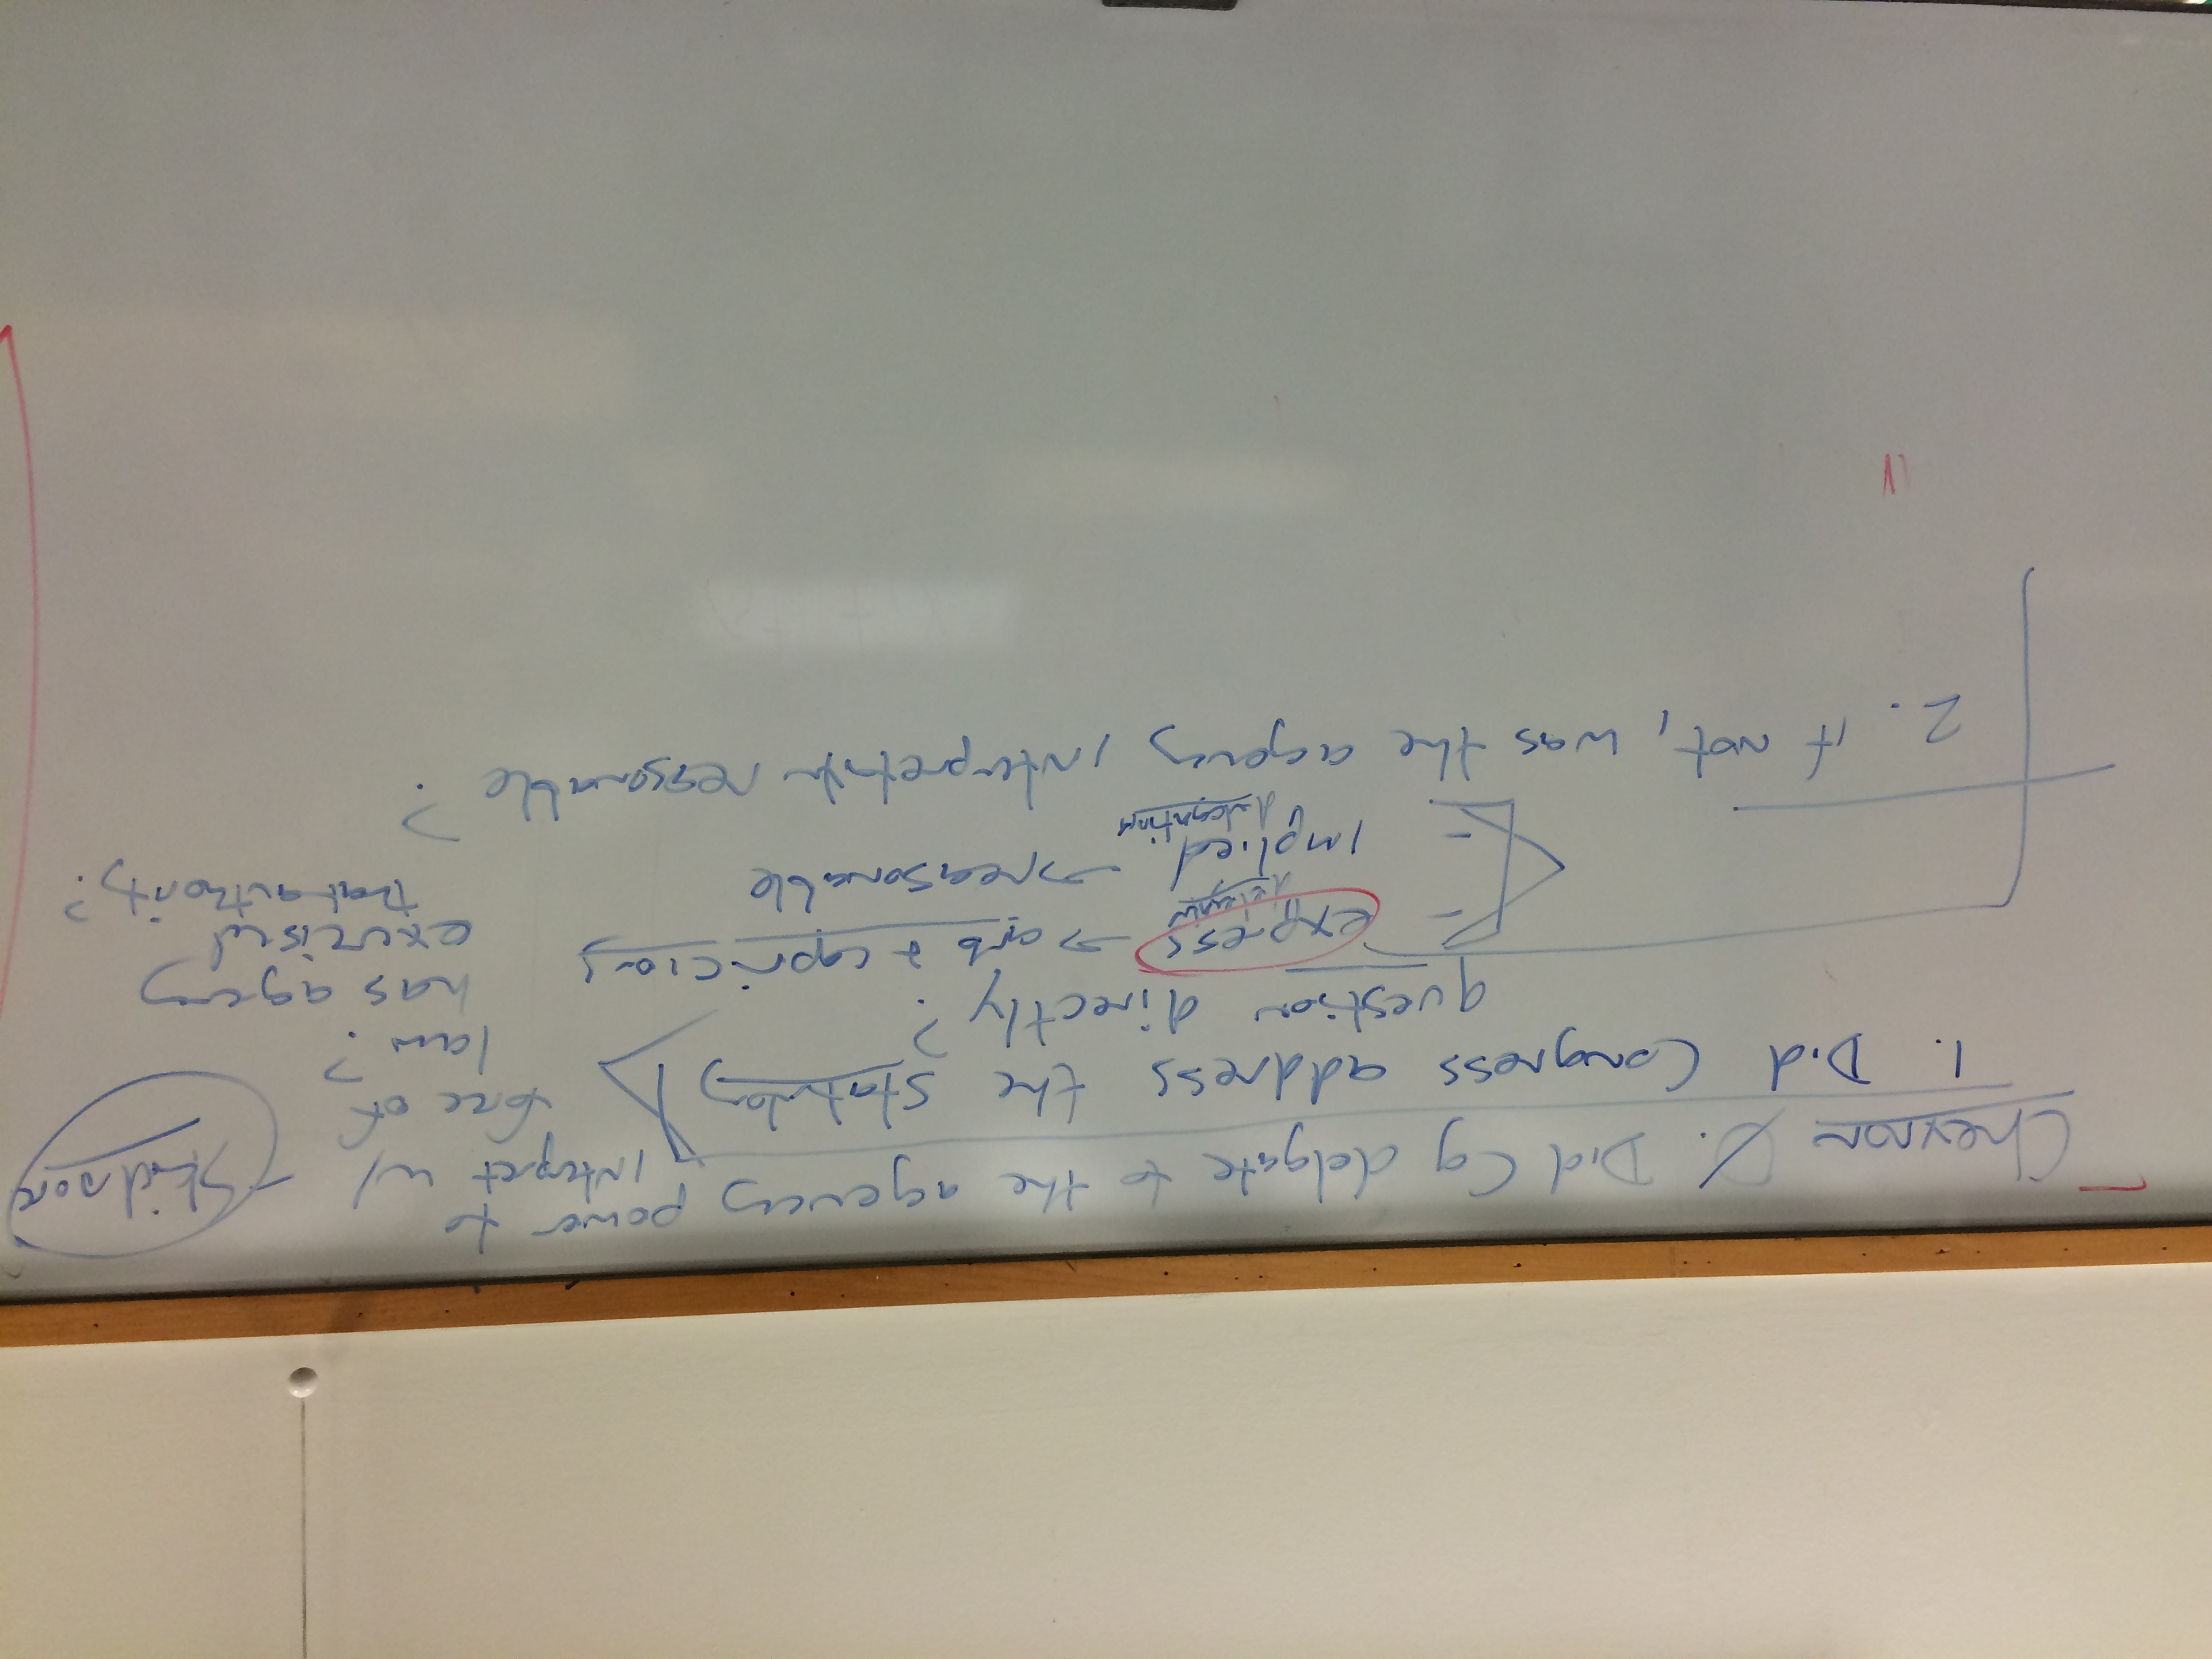 statutory interpretation and regulation course syllabus whiteboard 1 2